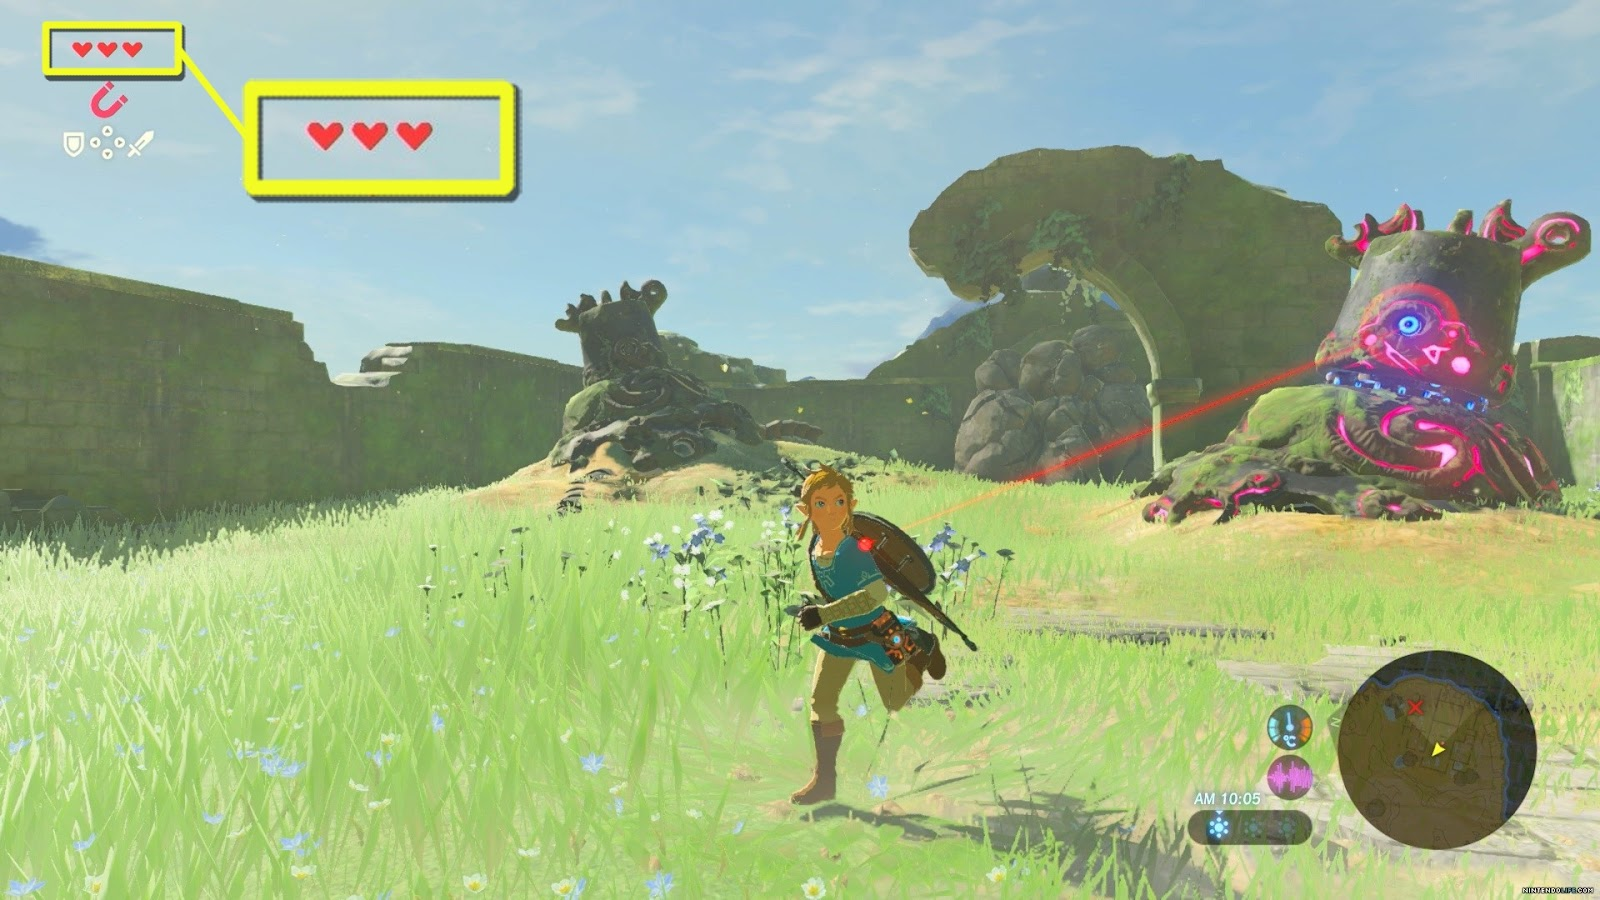 Breath of the wild screenshot, illustrating a lifebar